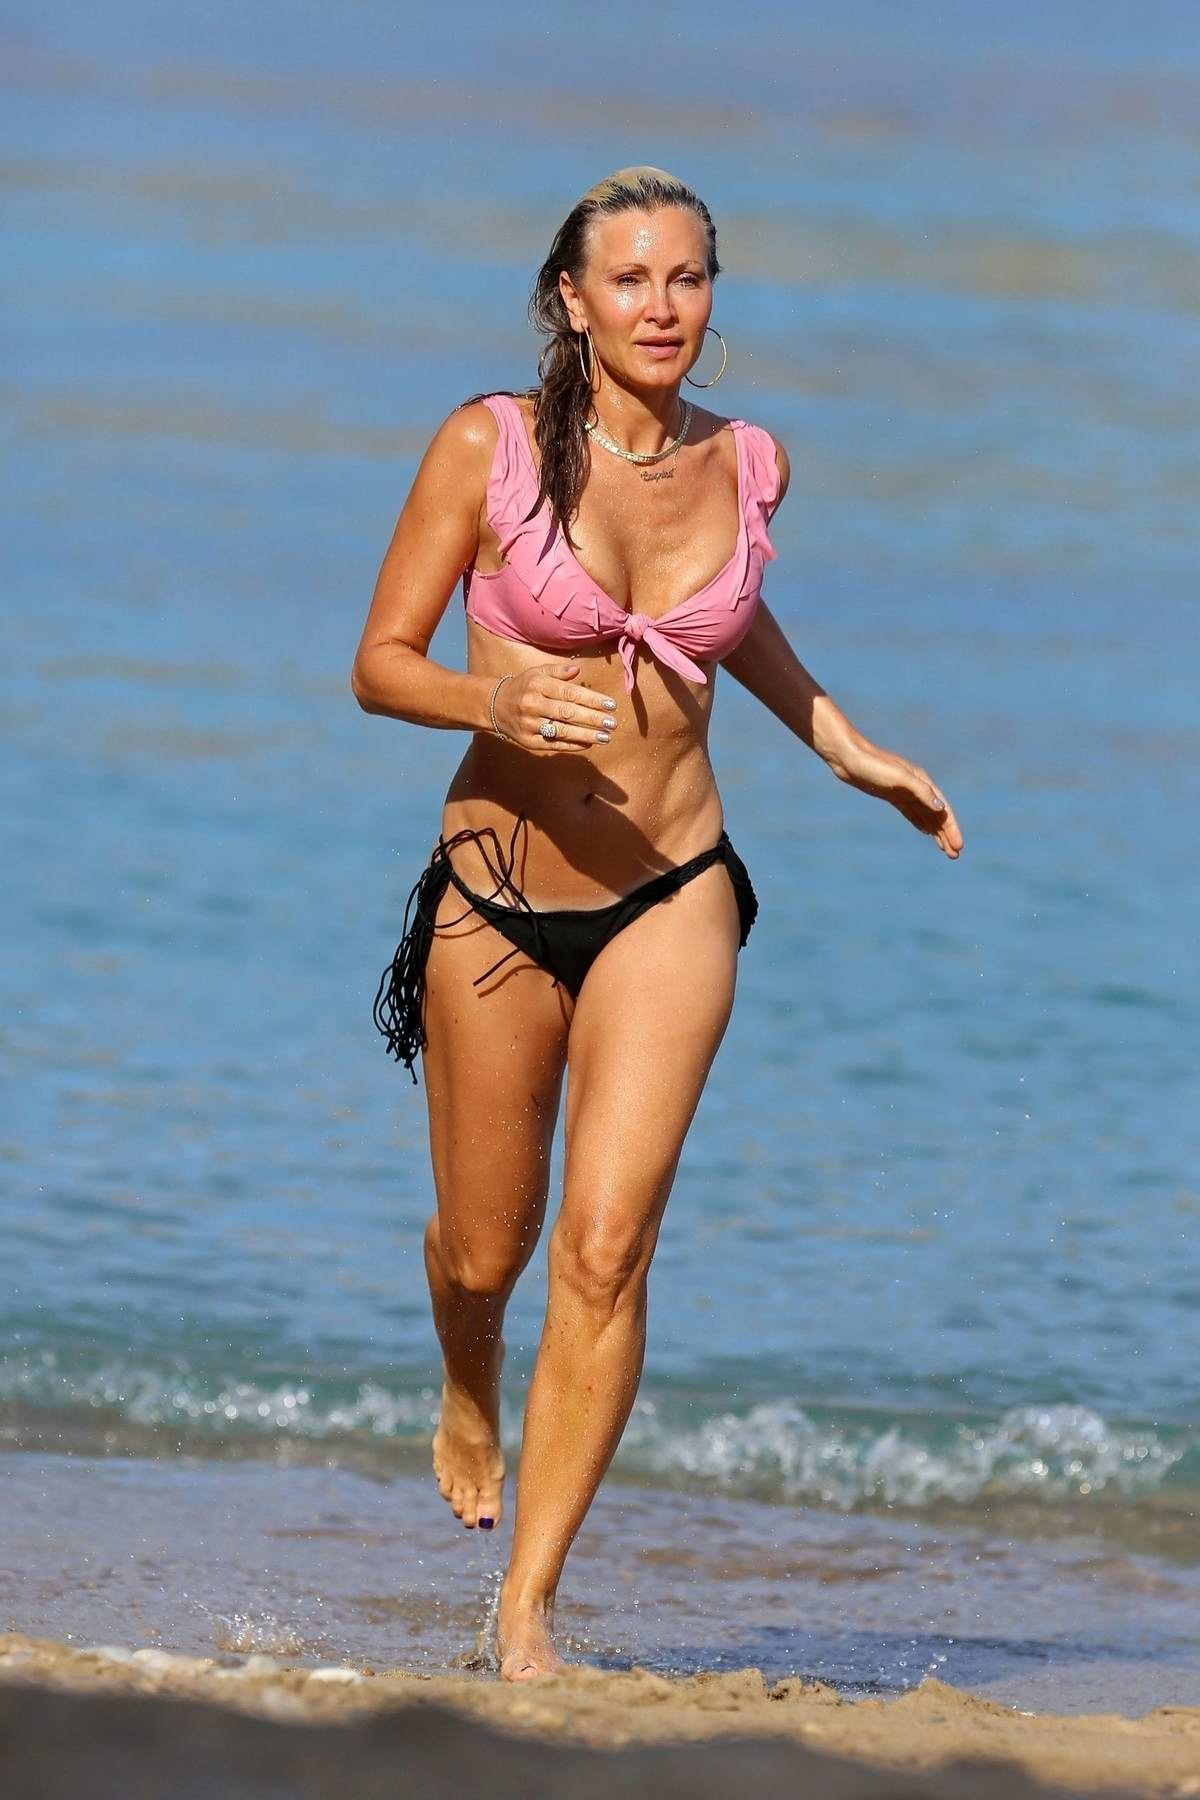 Caprice Bourret shows off her bikini body as she relaxes at the beach while on holiday in Ibiza, Spain